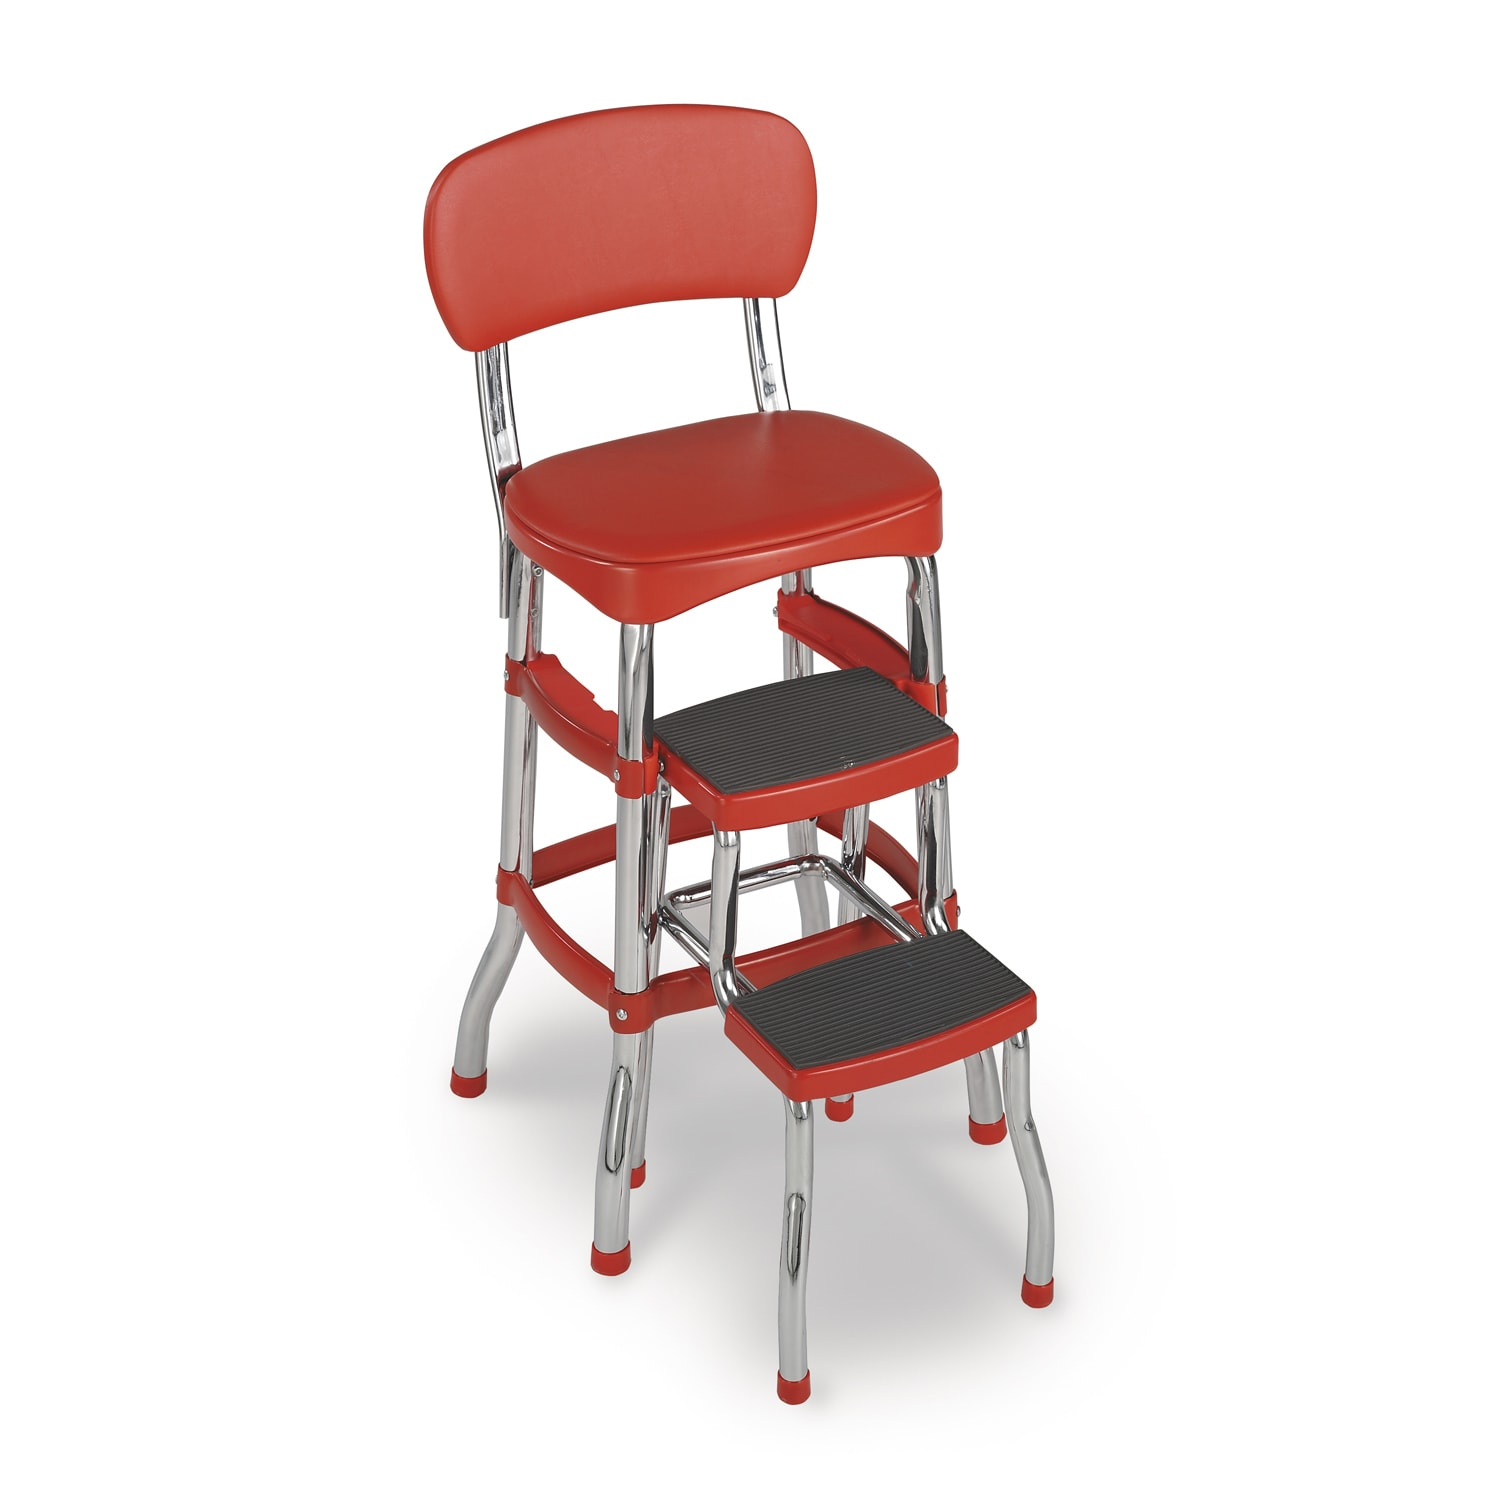 Cosco Retro Counter Chair / Step Stool at Sears.com